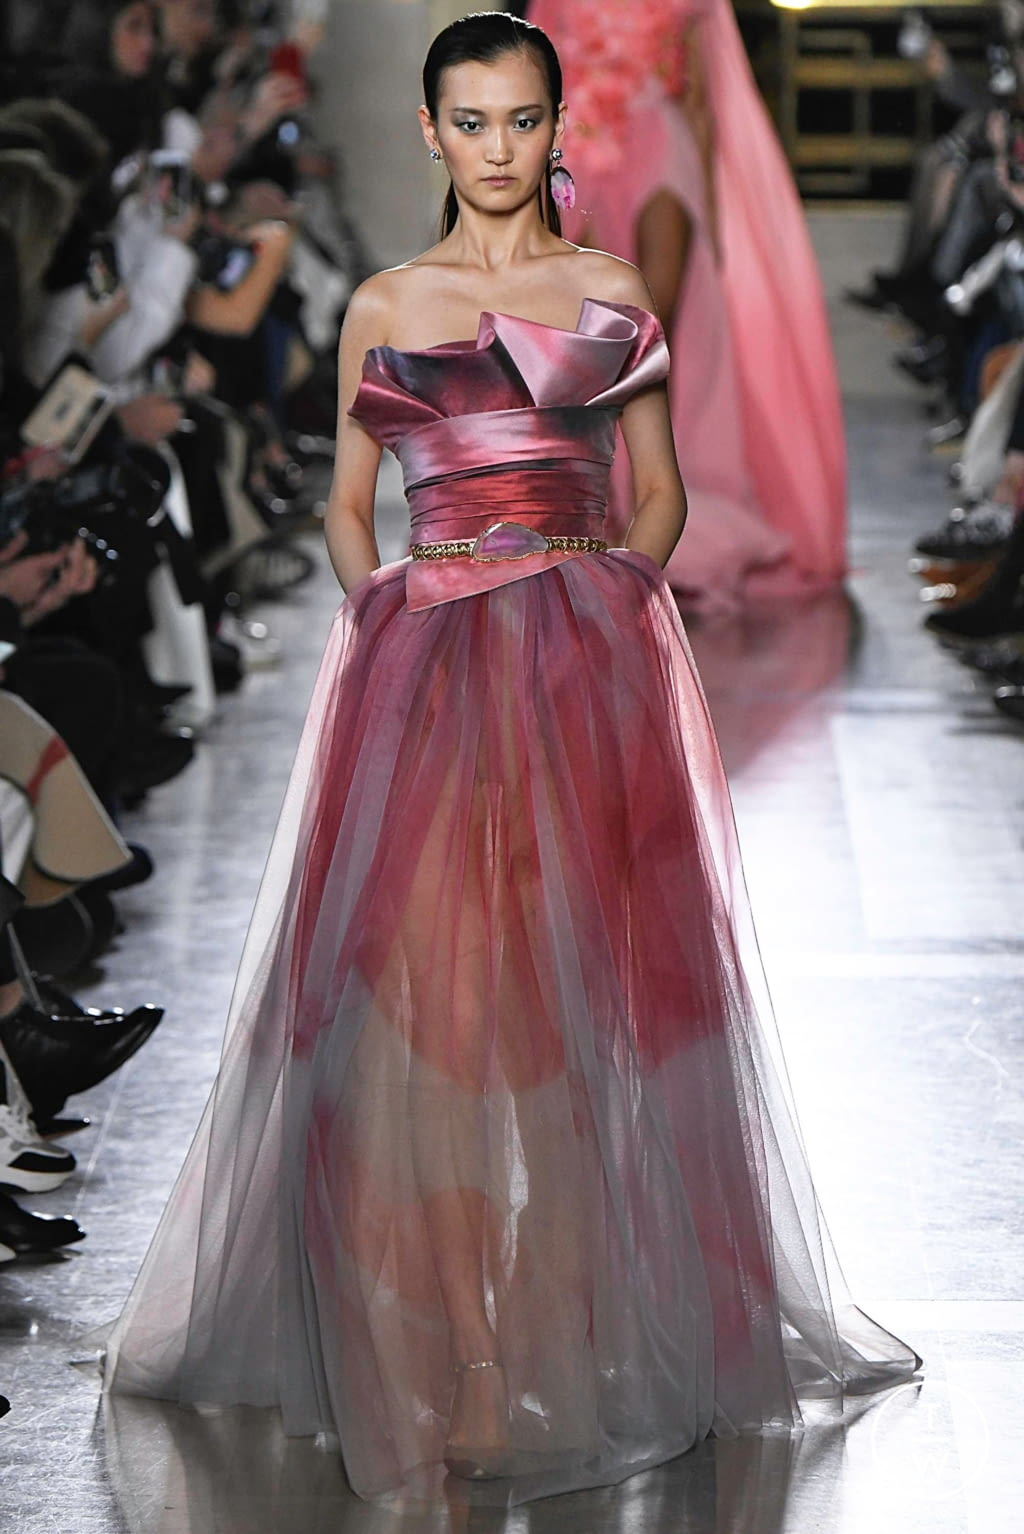 Fashion Week Paris Spring/Summer 2019 look 17 from the Elie Saab collection 高级定制